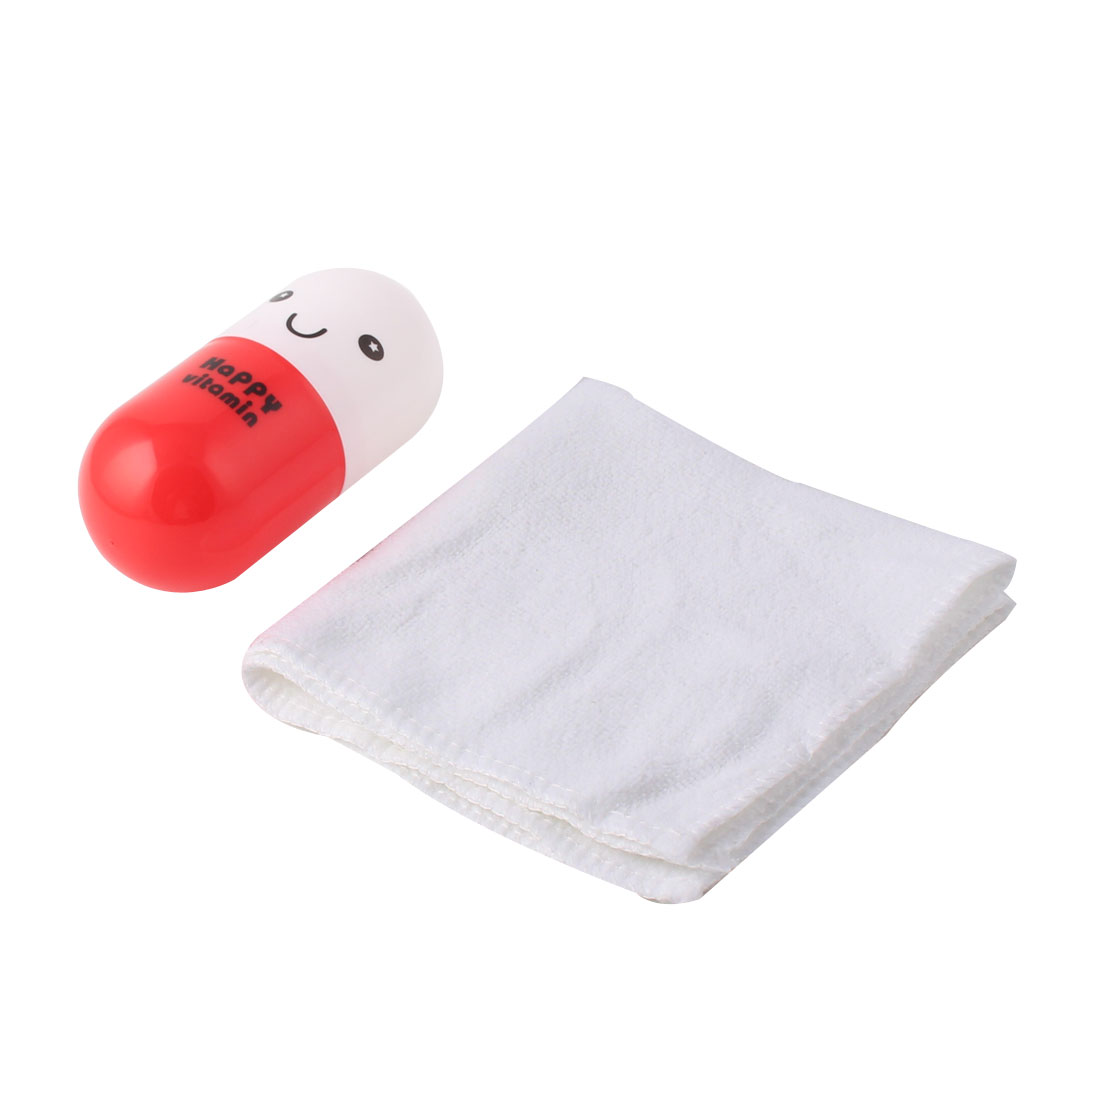 Outdoor Travel Pills Shape Box Cotton Blend Hand Towel Facecloth Washcloth